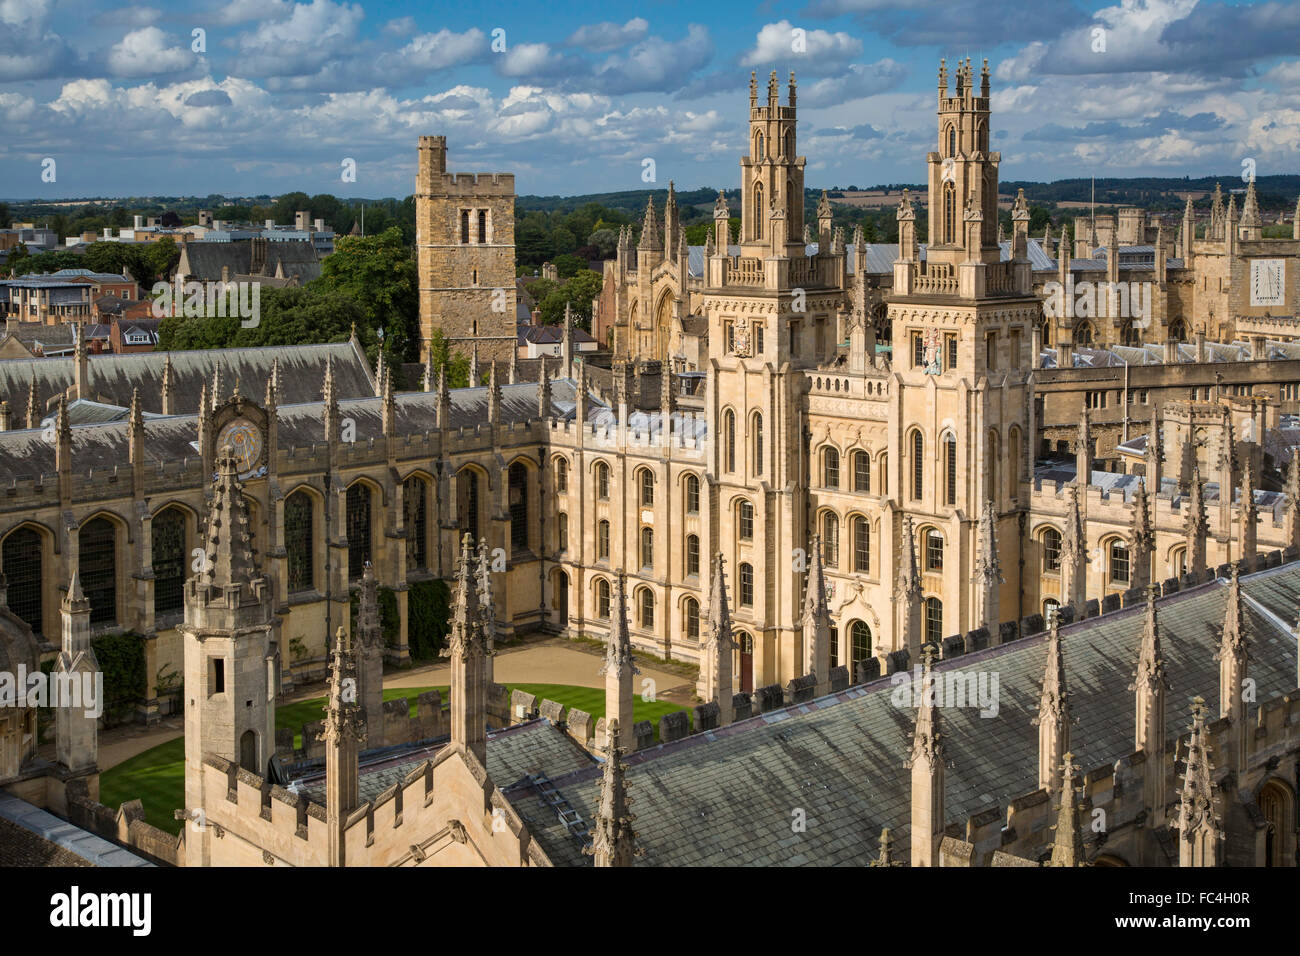 All Souls College and the many spires of Oxford University, Oxfordshire, England Stock Photo